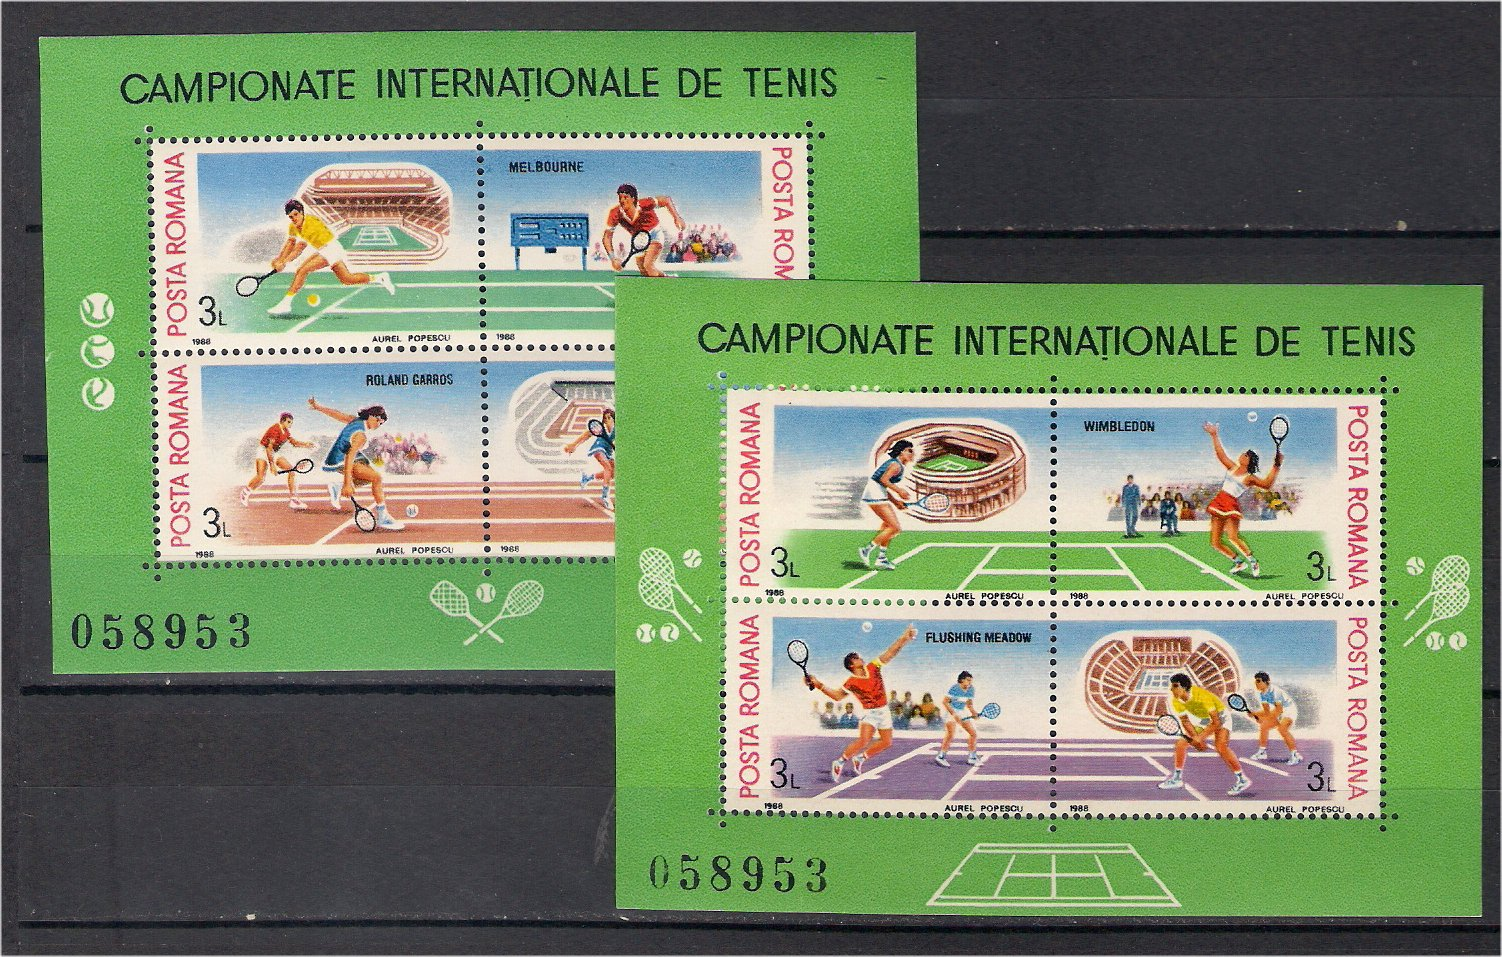 1988 - Campionatele Internationale de tenis, blocuri neuzate